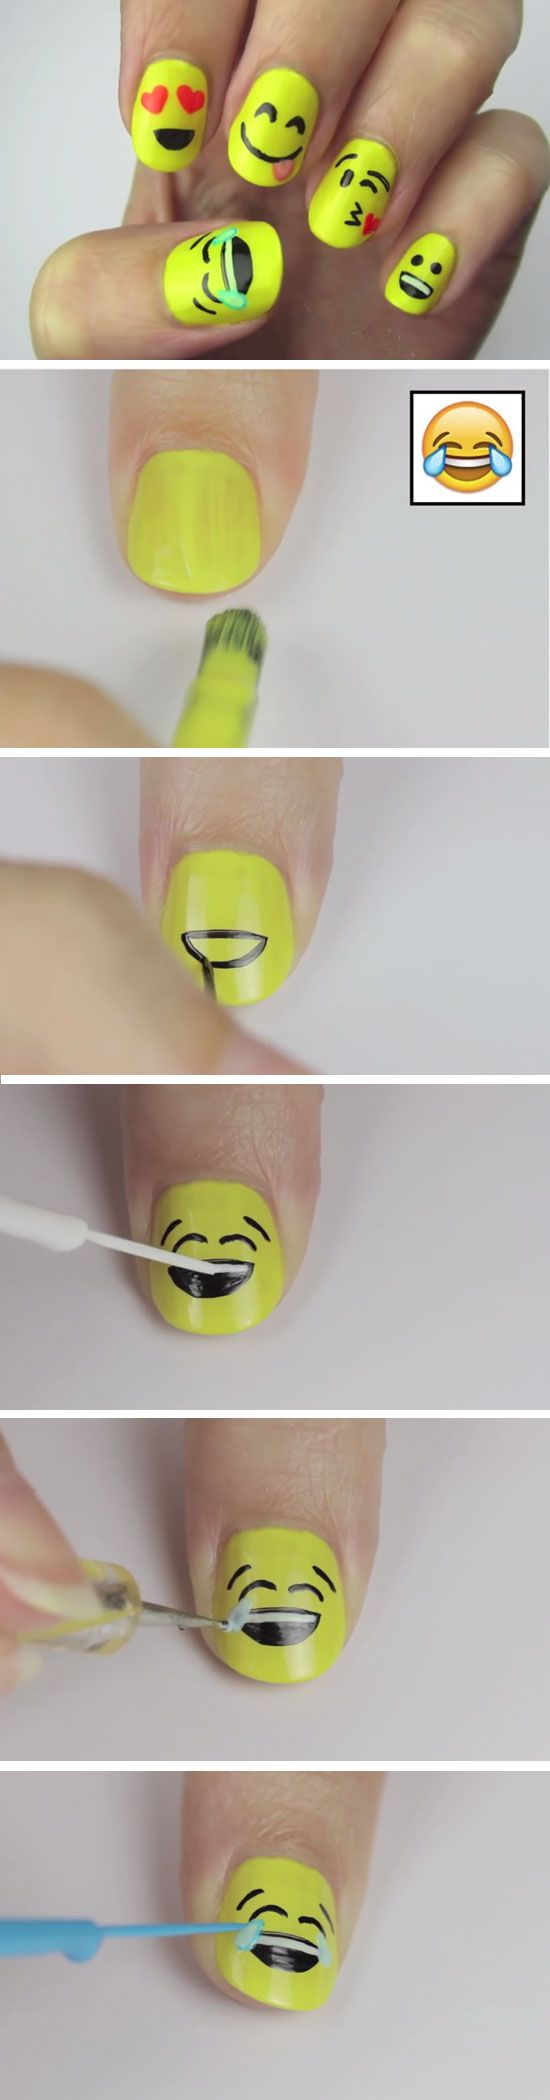 Emoji Nail Art | DIY Back to School Nails for Kids